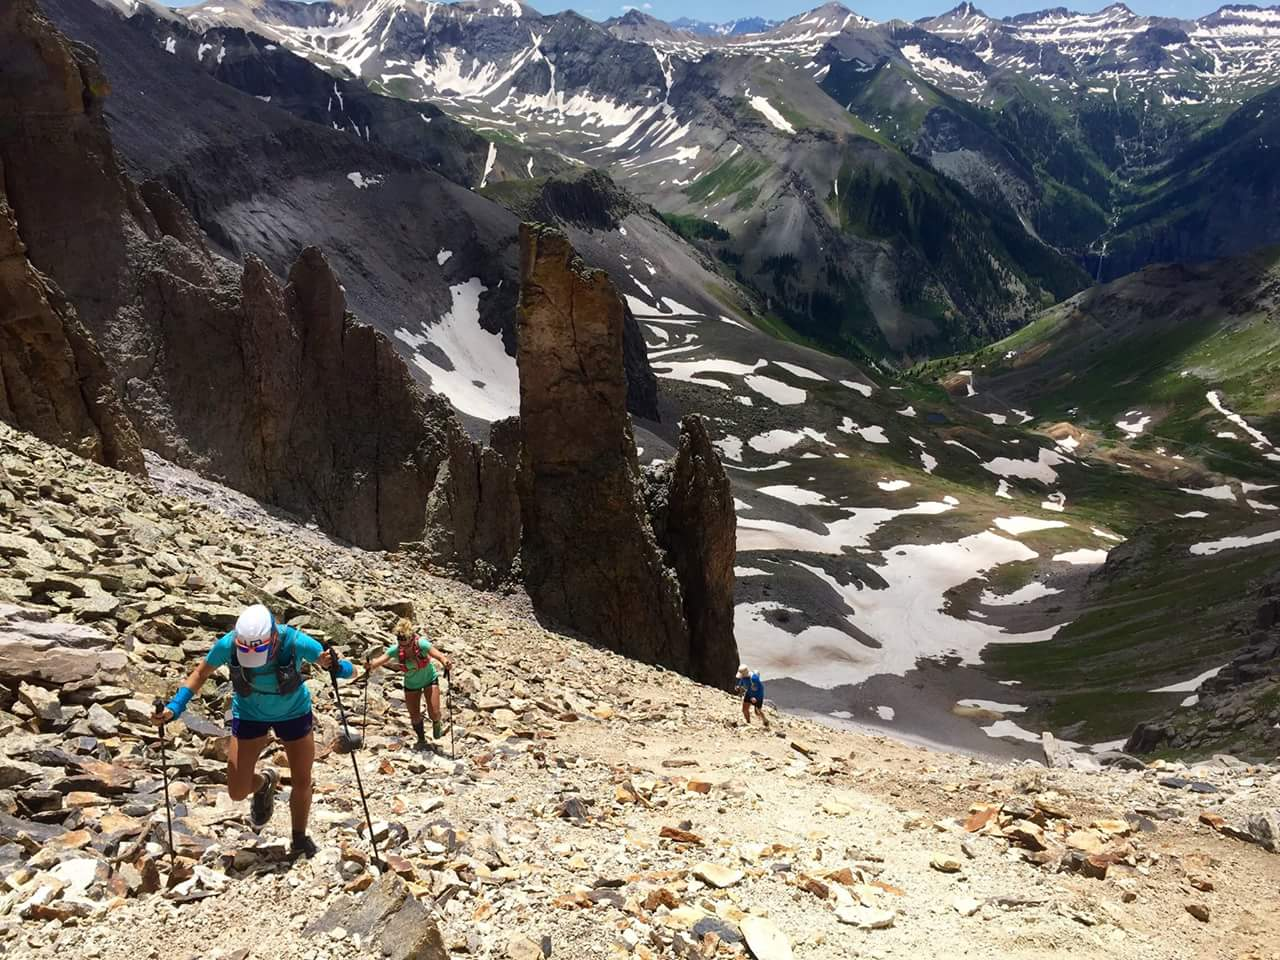 That's me in front, ascending Virginius Pass on a Hardrock 100 training run in early July with Katie DeSpinter Grossman and Scott Mills. The trekking poles become even more helpful on the way down on a scree and talus field like that!